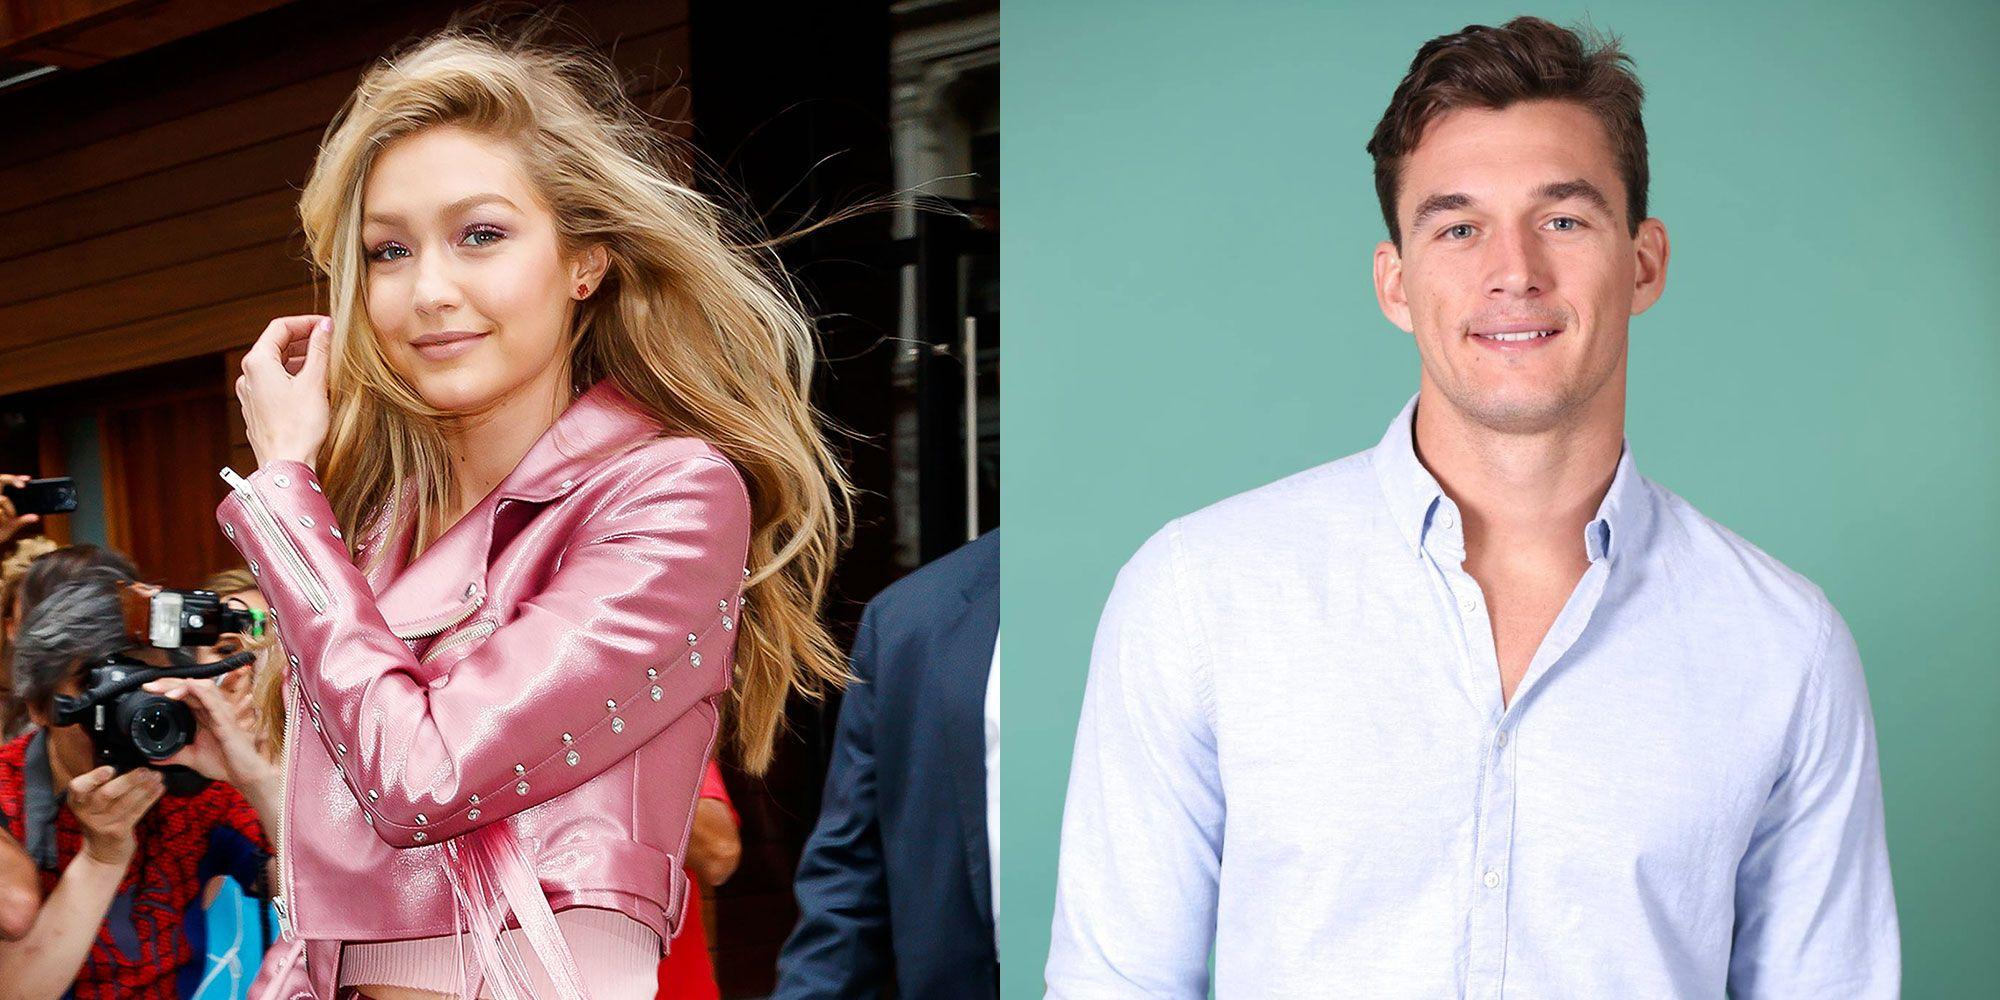 Tyler Cameron Just 'Having Fun' With 'Several Women' After Split From Gigi Hadid - Enjoying The Single Life!